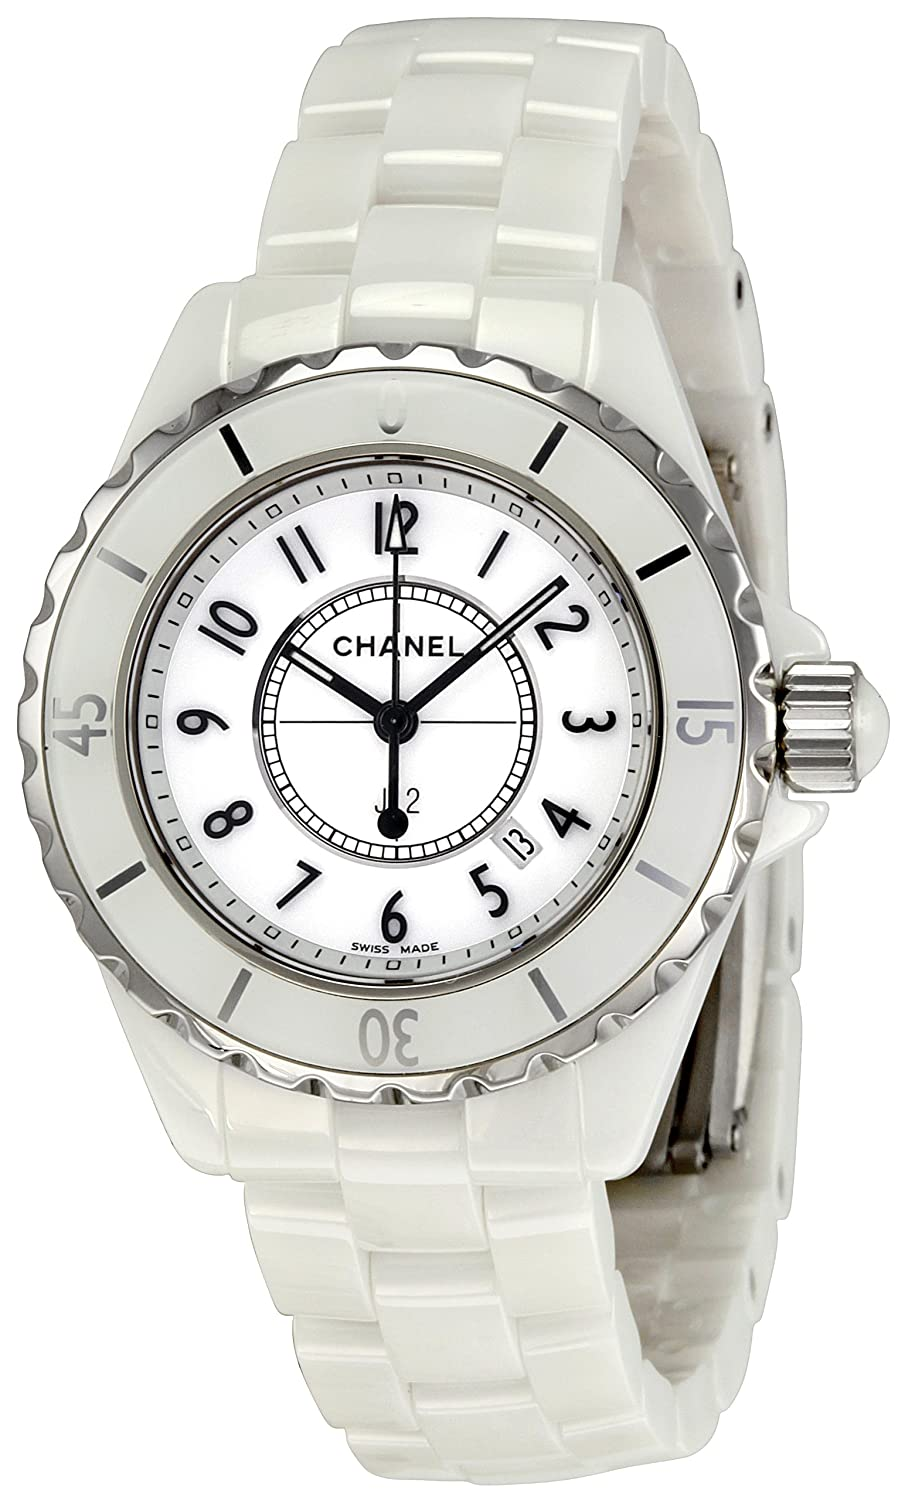 fine ref white women watches jewellery joli womens closet designers en ceramic chanel